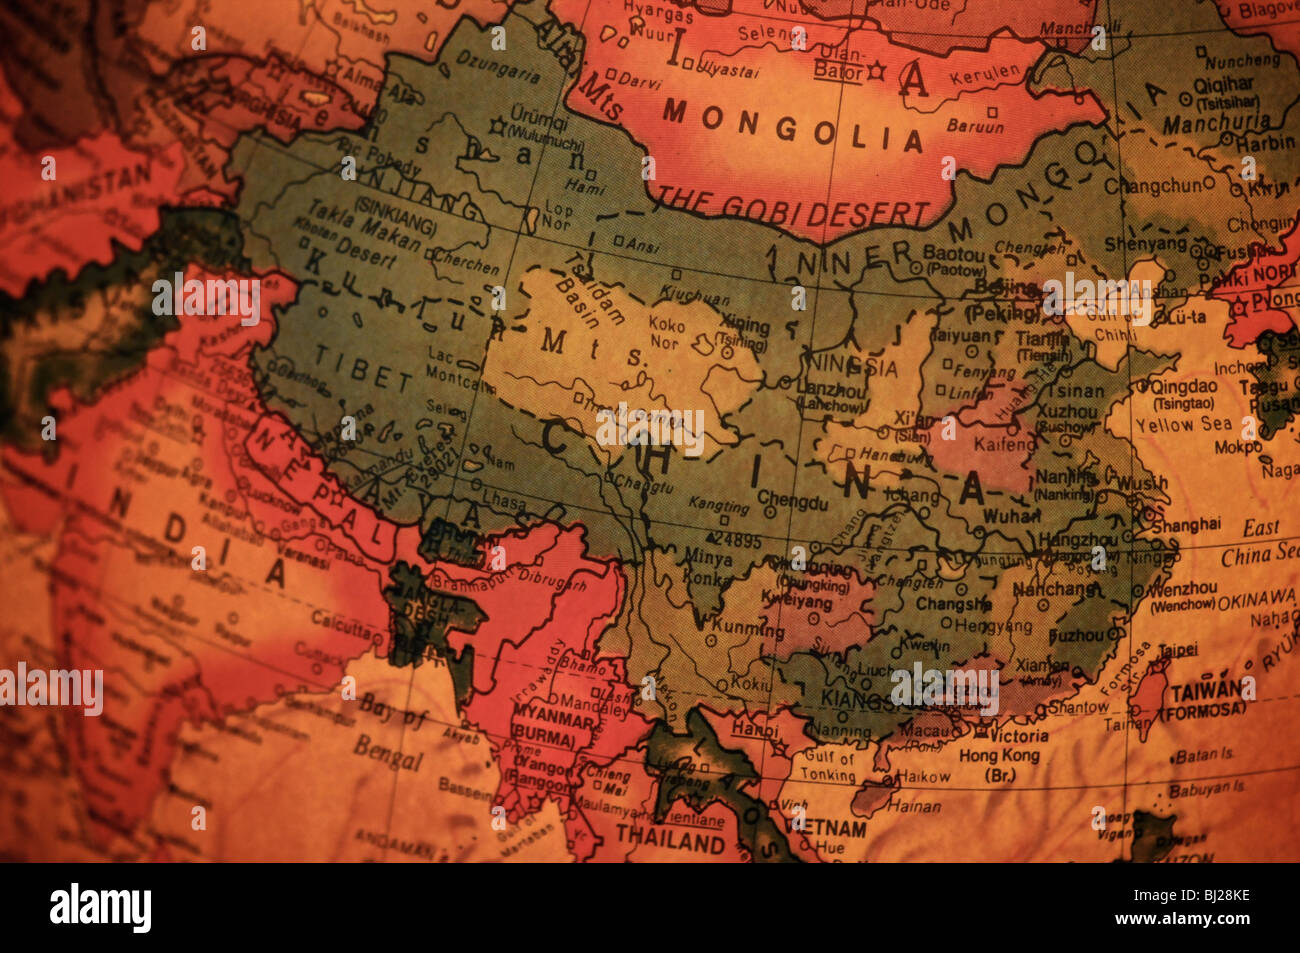 A detail photo of the world as depicted on an antique globe. Focusing on China. - Stock Image